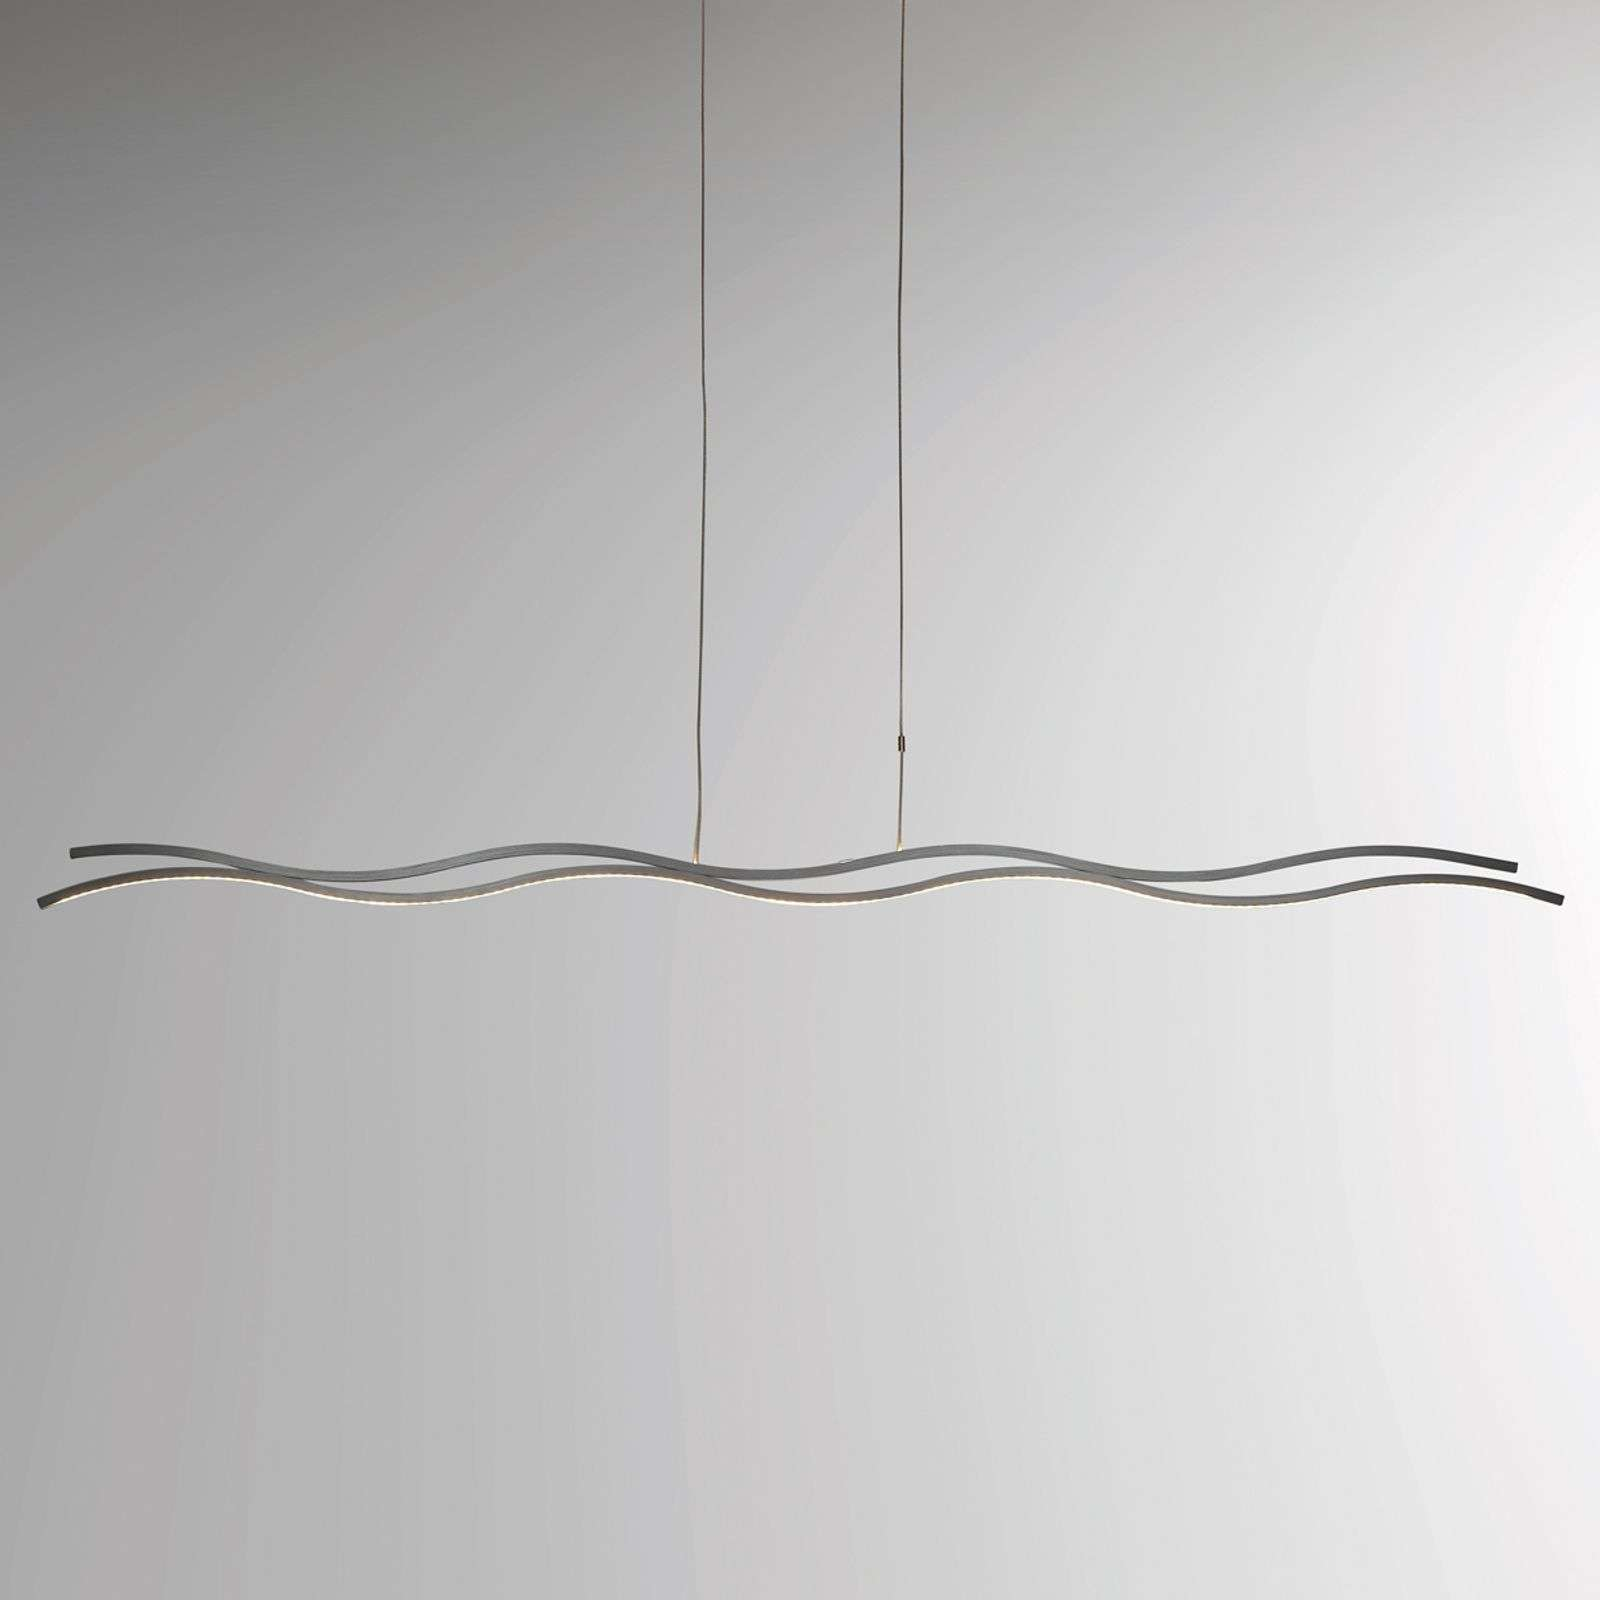 Suspension LED Soft avec variateur, 140 cm long